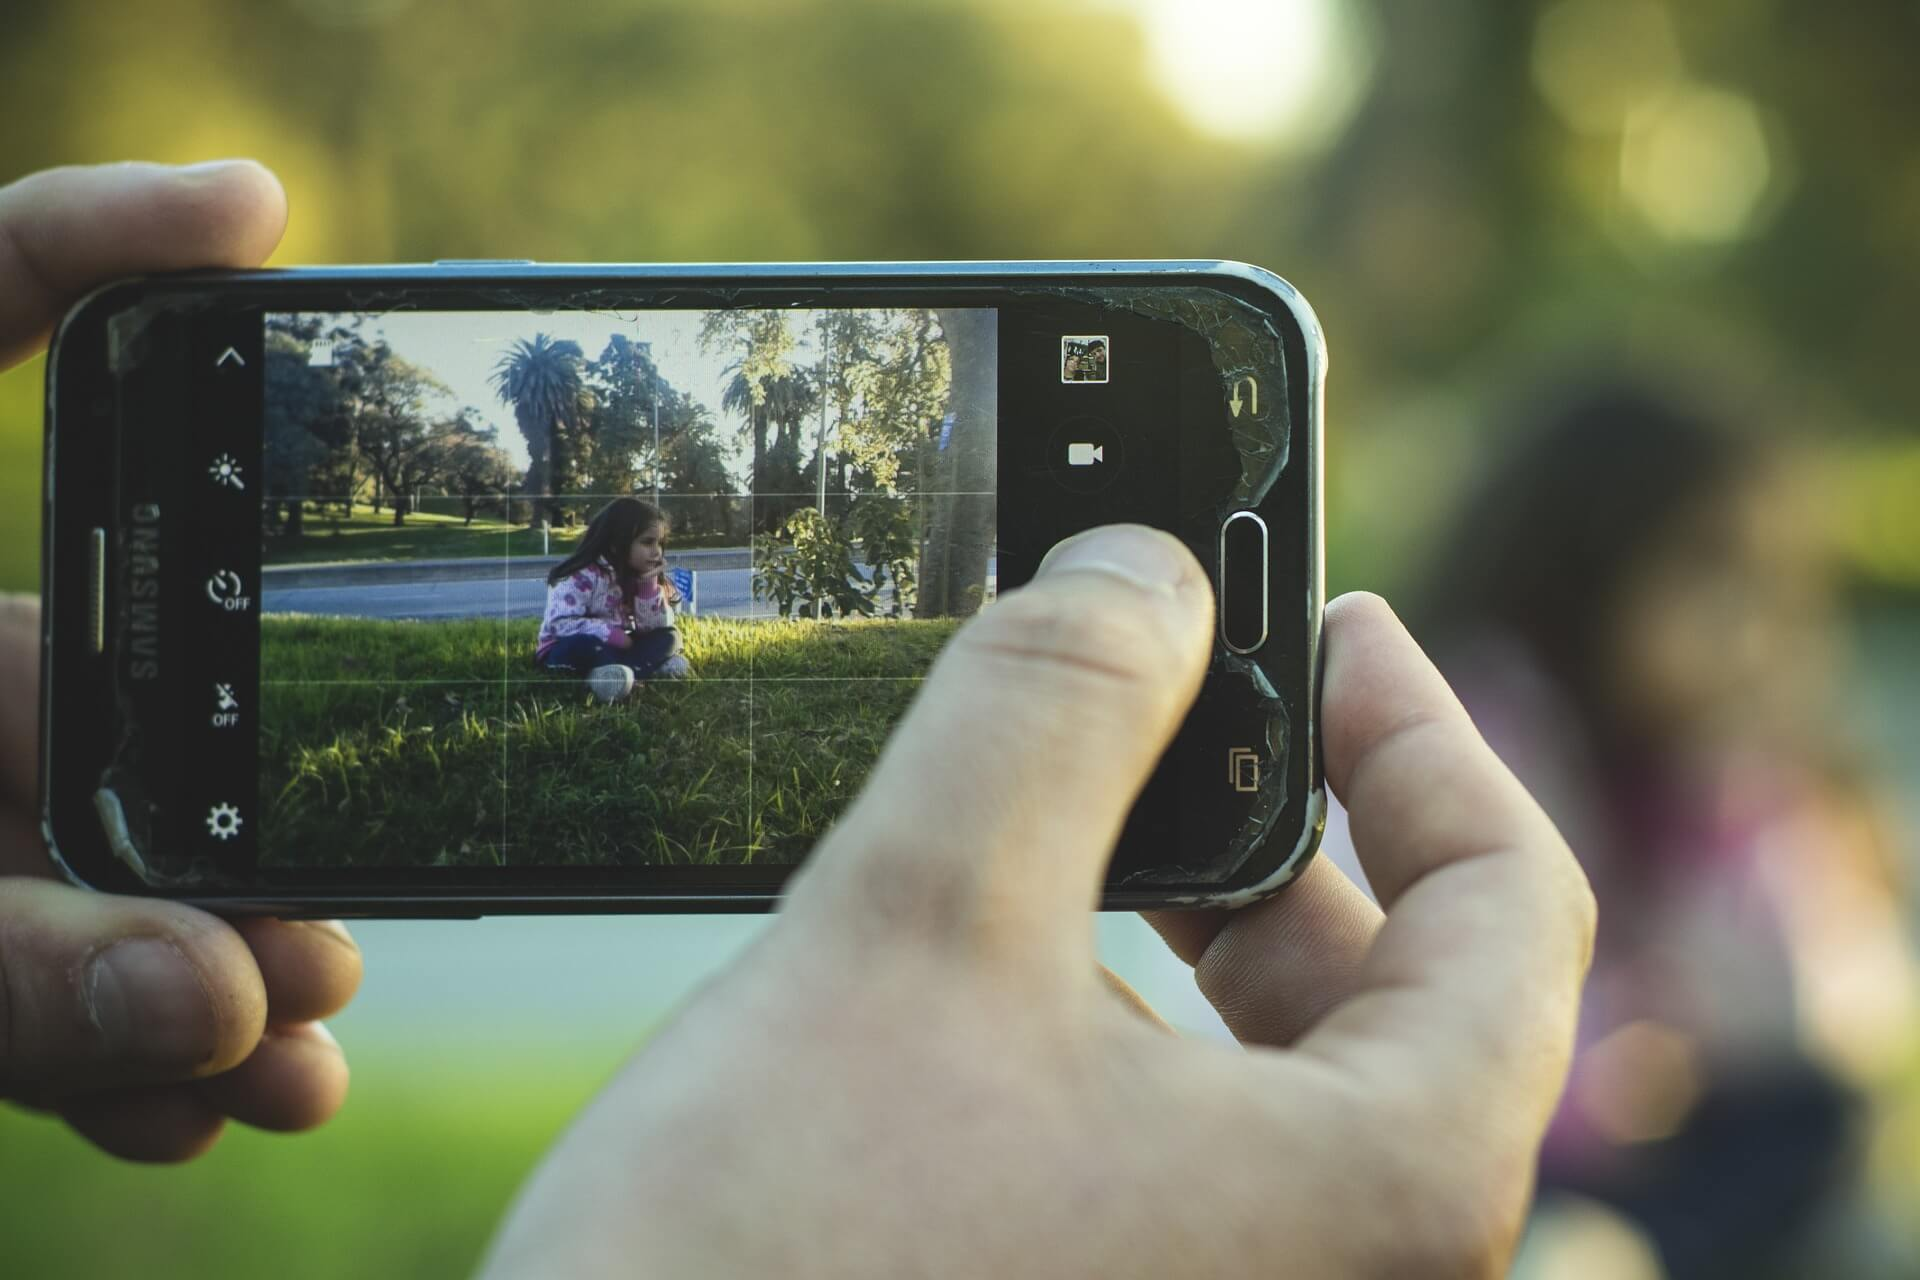 content/ja-jp/images/repository/isc/2020/is-it-safe-to-post-photos-of-your-kids-online.jpg